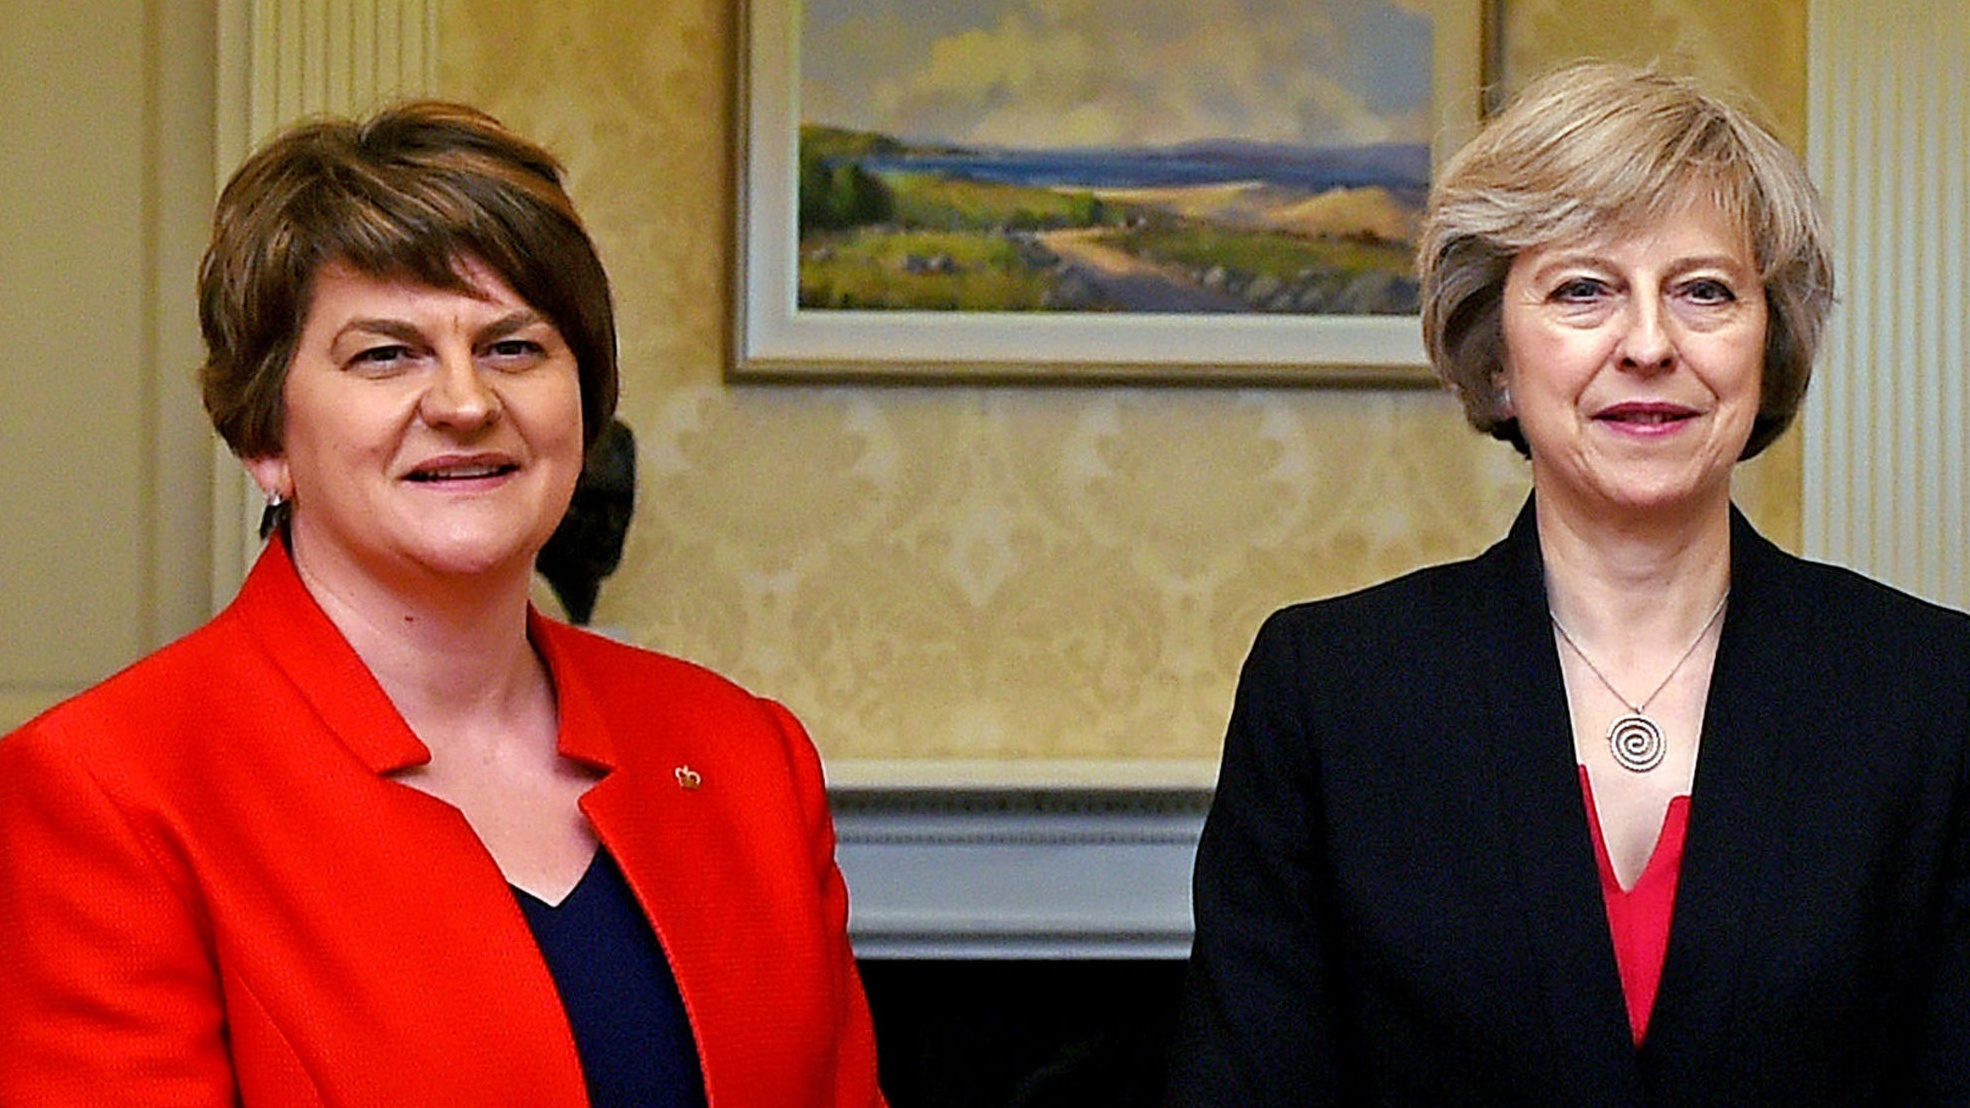 What will the DUP's demands be if there's a coalition government?